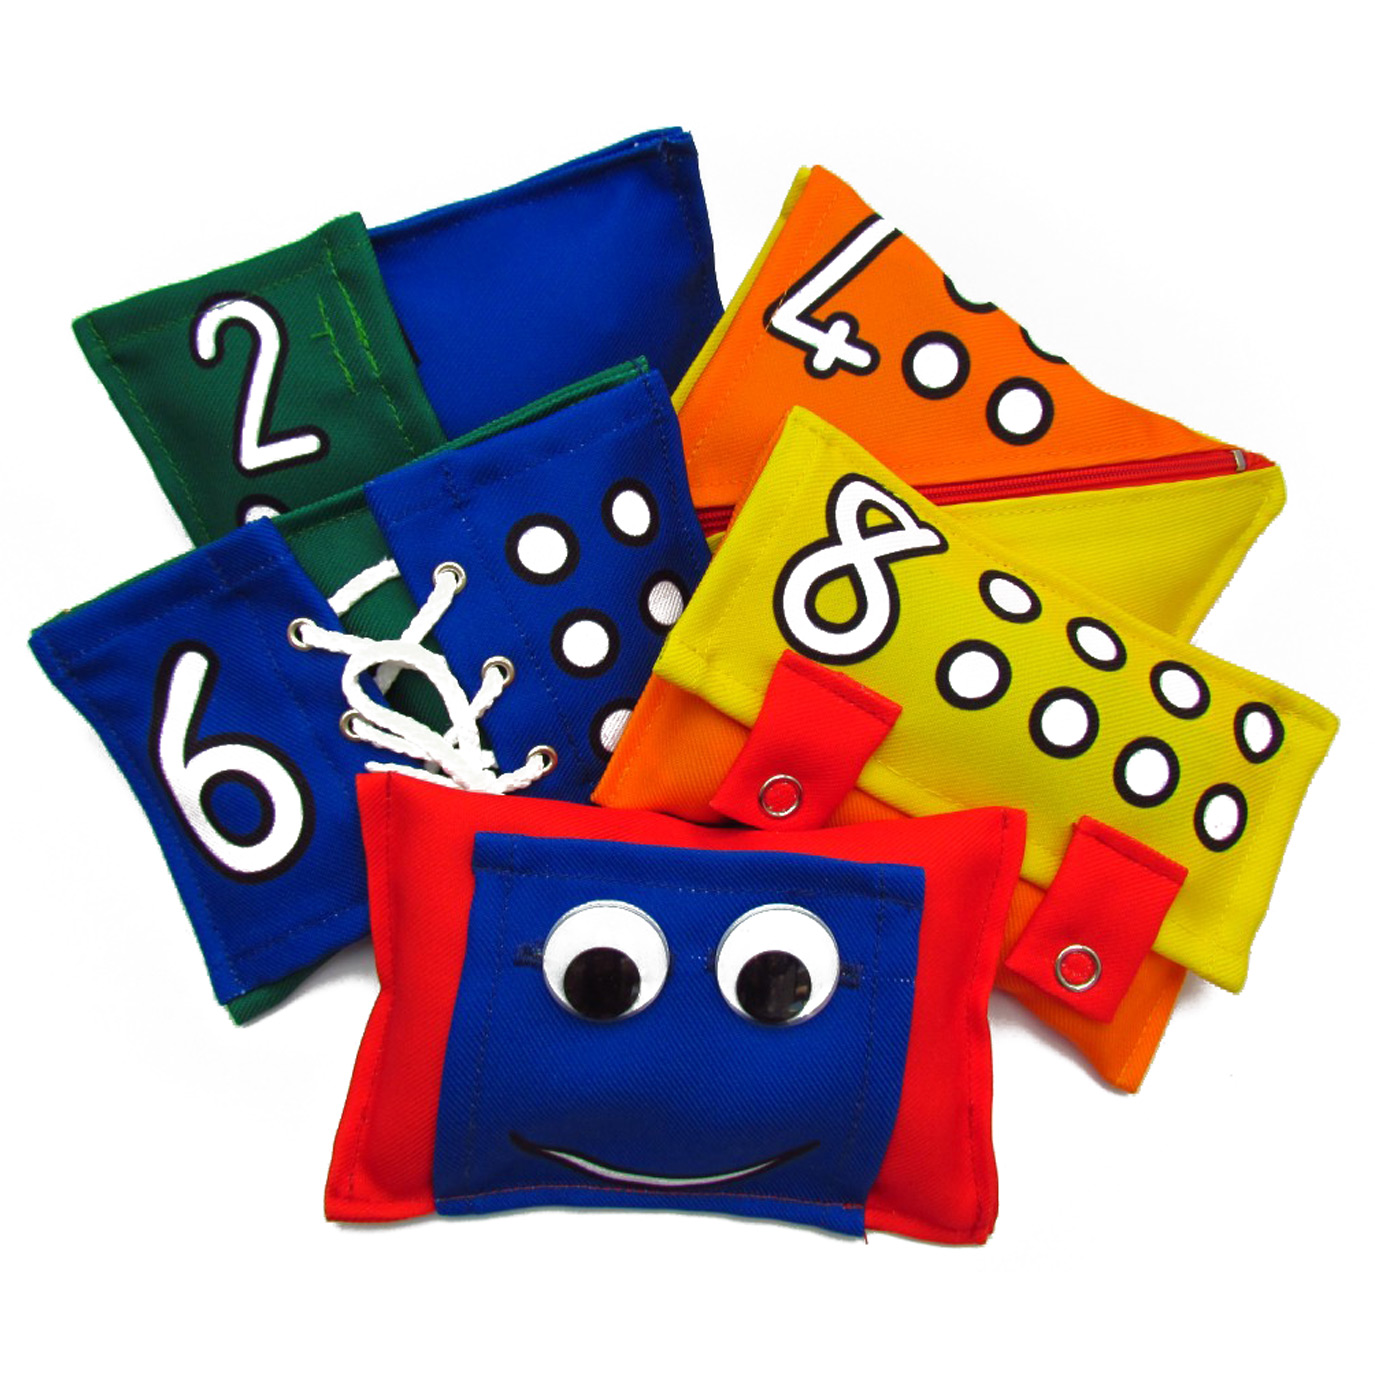 EDUBEANS BEAN BAGS (R230) The play and learning opportunities with this set of EduBeans is mind-blowing. The five brightly coloured bean bags have numbers and corresponding dots to help with perceptual skills. The weight of each bean bag differs from the next, which can help children grasp the abstract concept of heavy vs. light; and our favourite part of these cool bean bags is the fine motor and self care skills they promote by having a zip, buttons, lacing, studs and velcro on the one side. Underneath each fastening is also a special shape surprise! :)  A wonderful product that promotes so many developmental skills including gross motor, fine motor, self care and perceptual.  The set includes 20 great educational activity ideas on a card which can be stuck on the fridge for some playtime inspiration.  The bags are machine washable, sized for small hands, and the packaging and filling is made from 100% recycled material.  Suitable for ages 2 years and older.